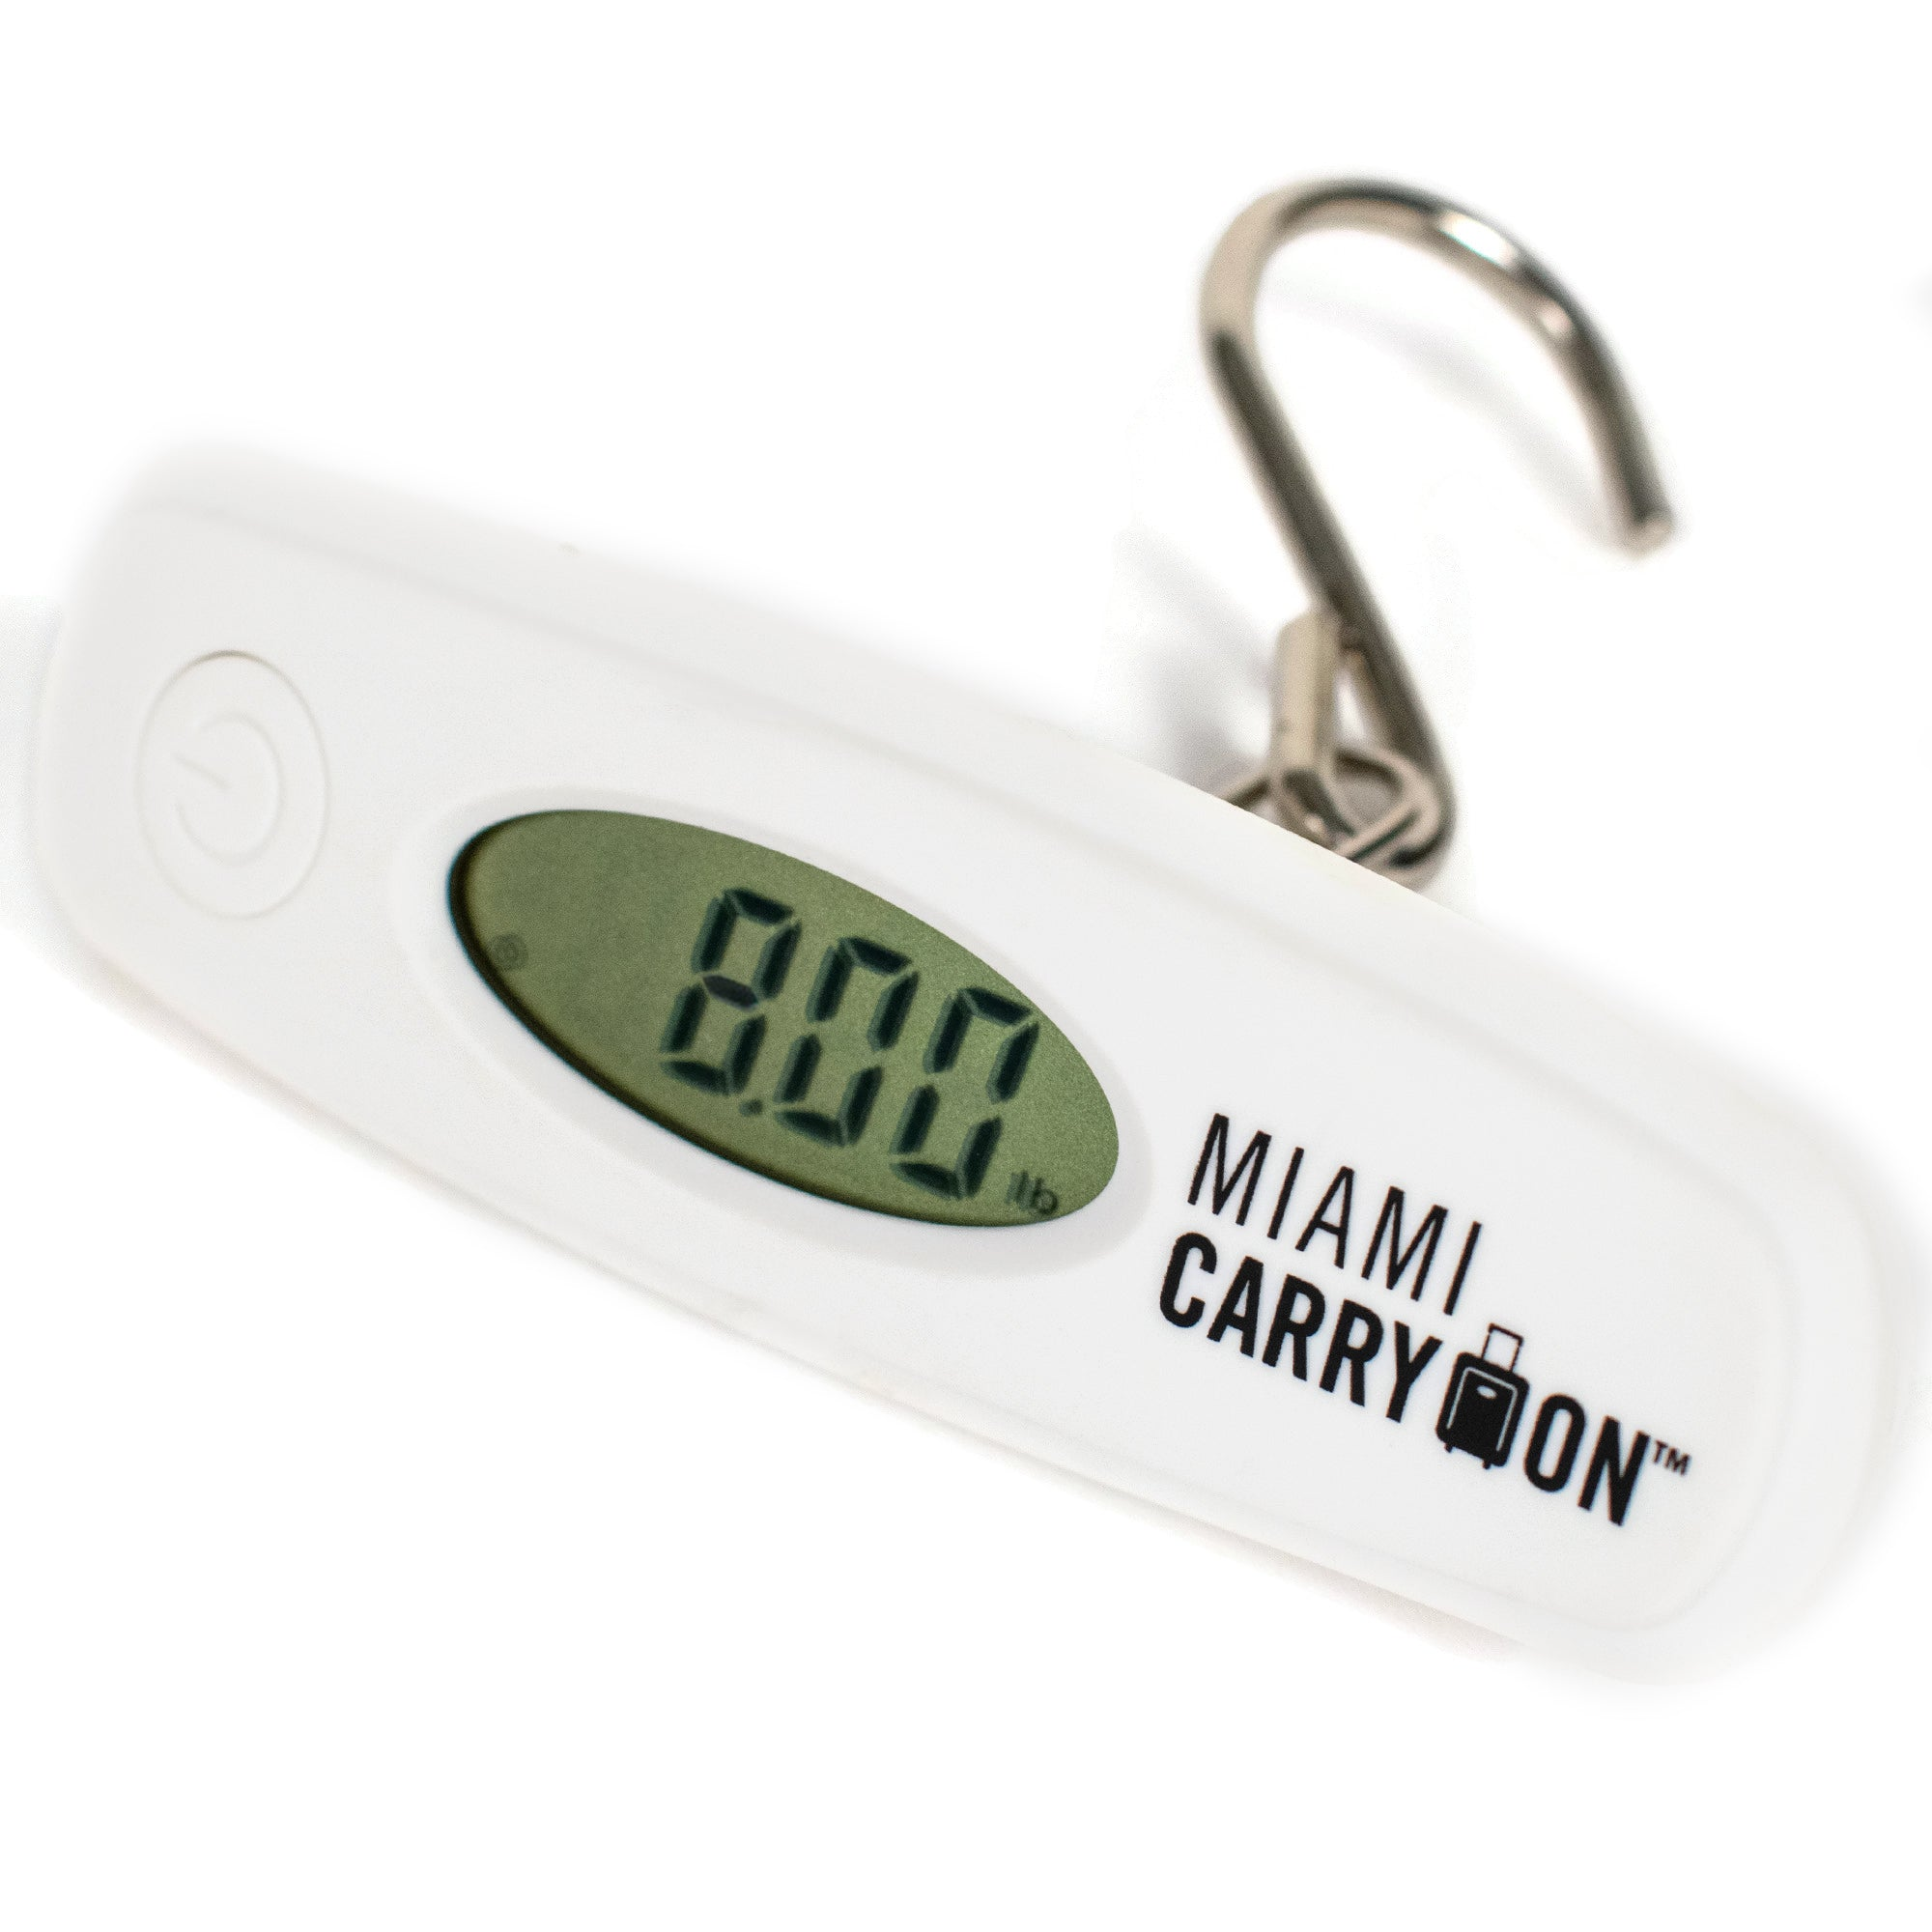 Digital Luggage Scale with Stainless Steel Hook - White - Travellty